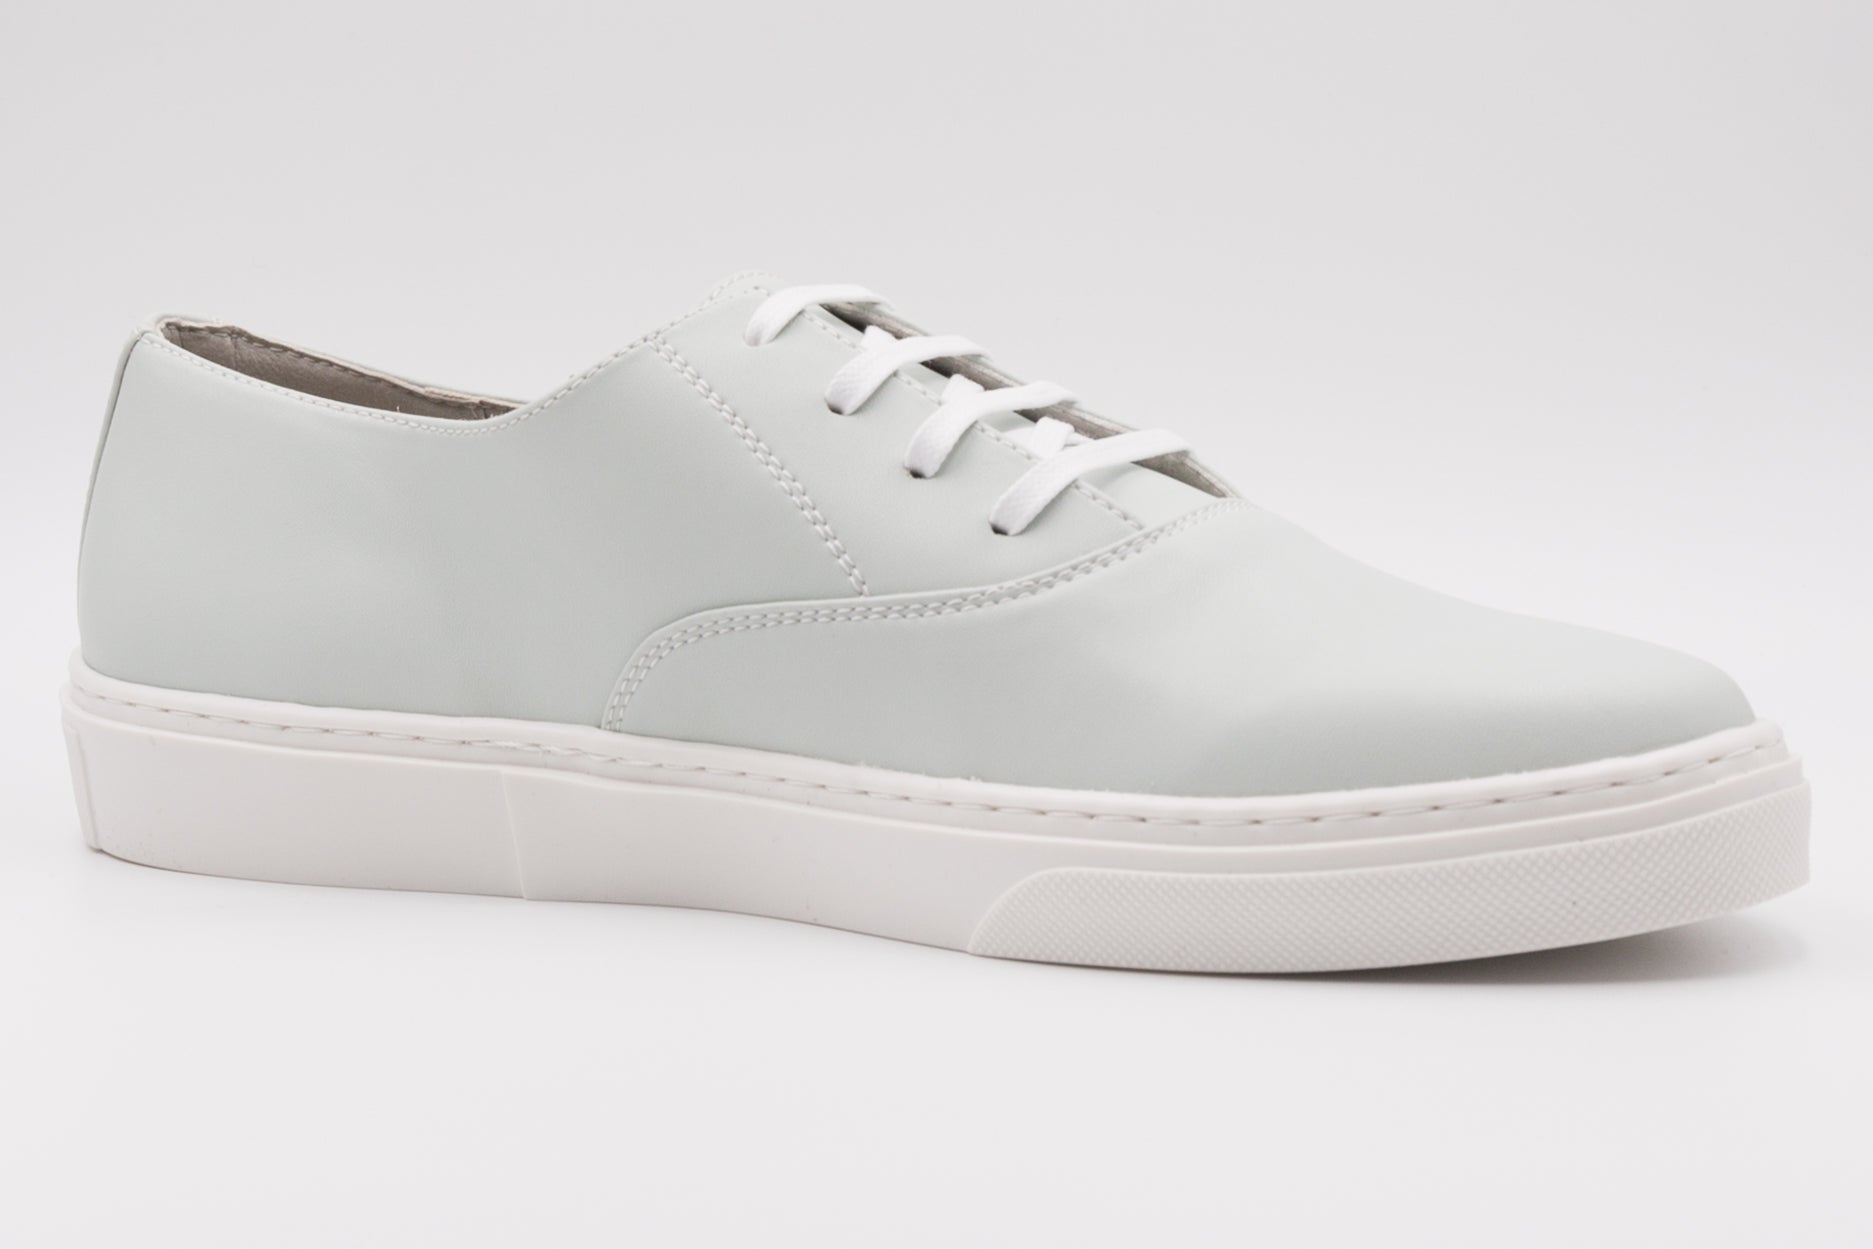 Vegan shoes from Paris, light blue cruelty-free sneakers